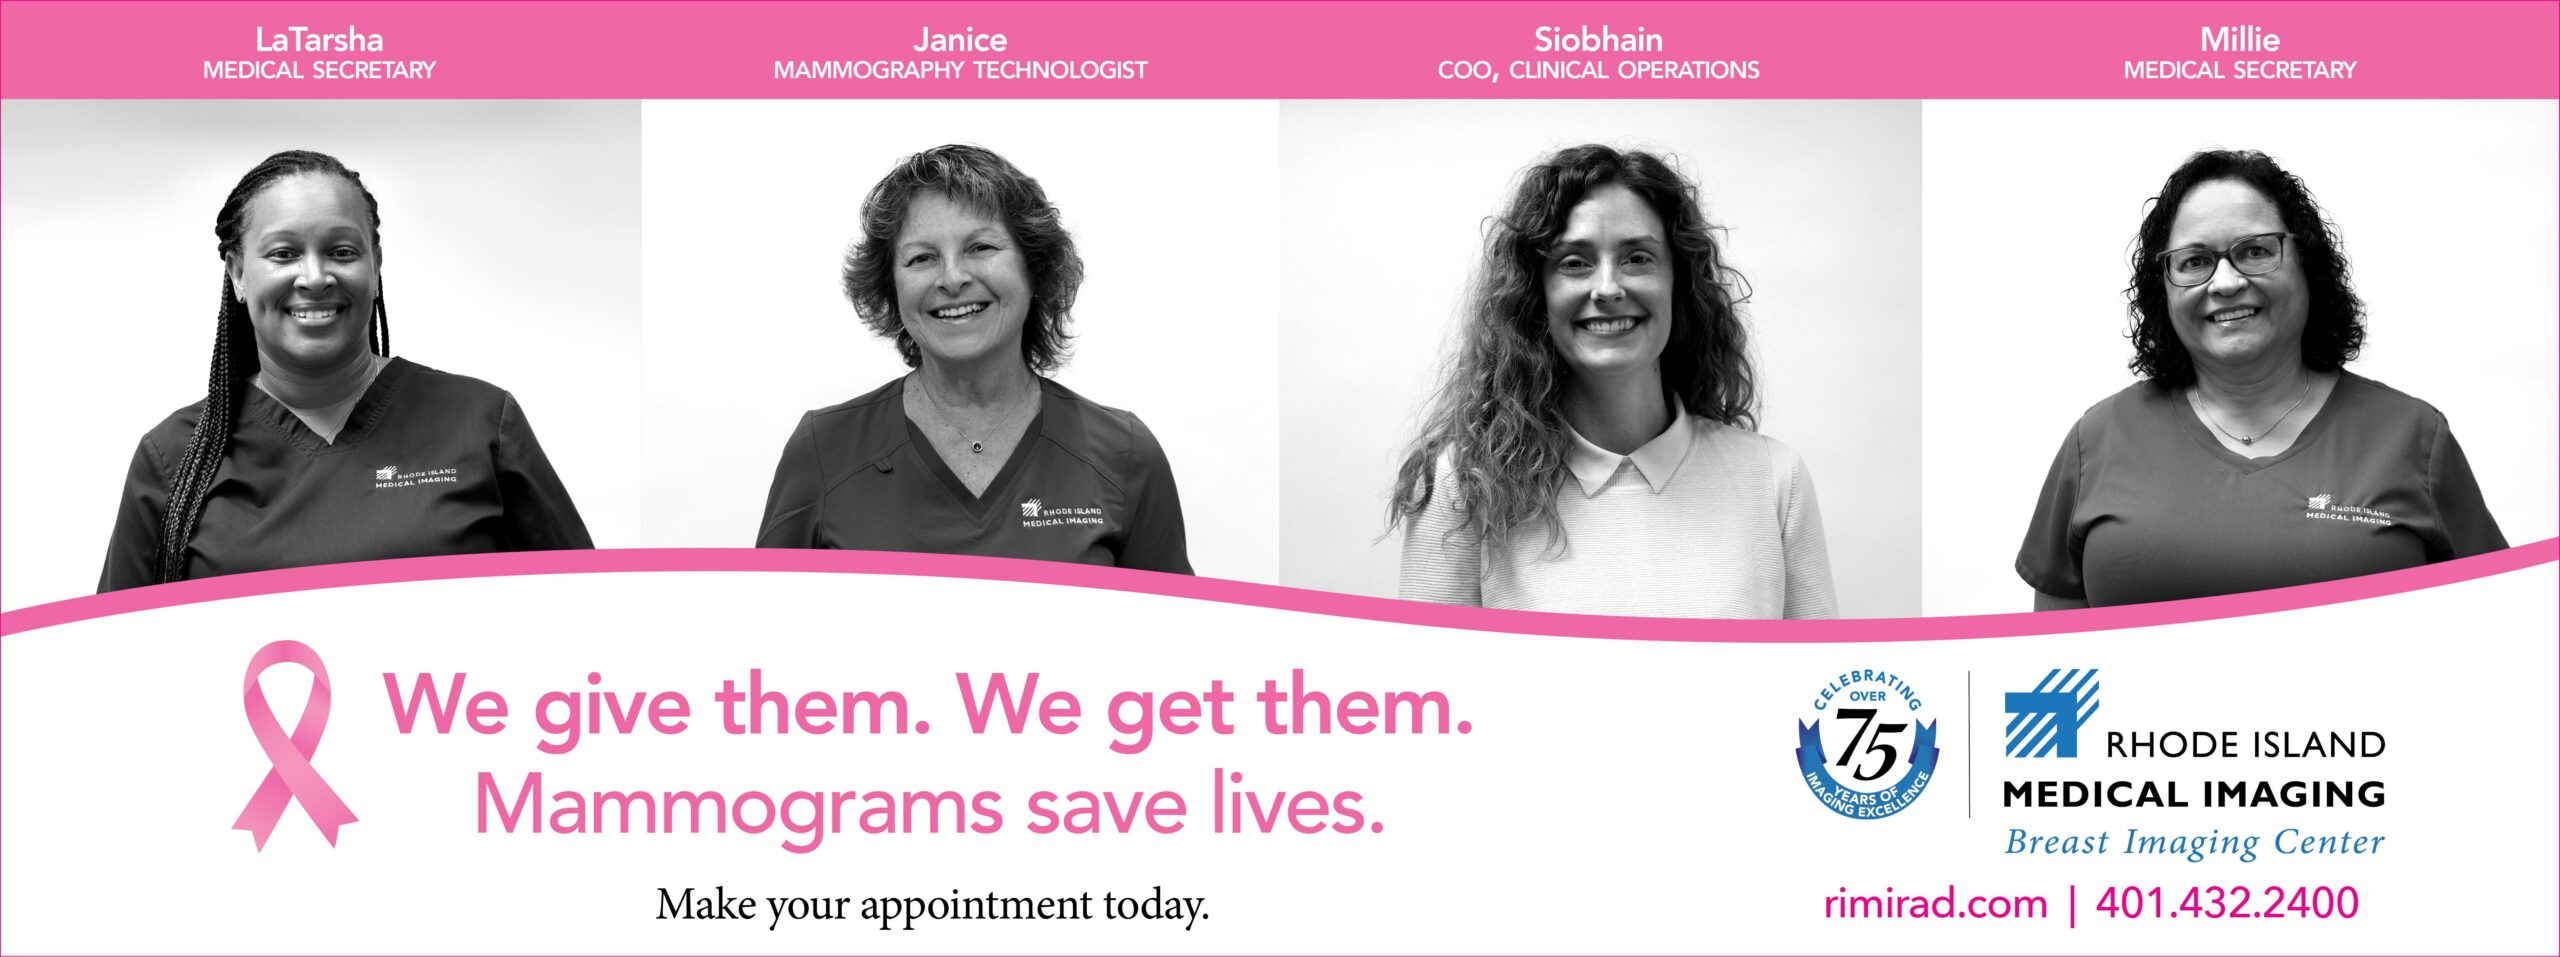 Rhode Island Medical Imaging (RIMI) - We Give Mammograms and We Get Them image